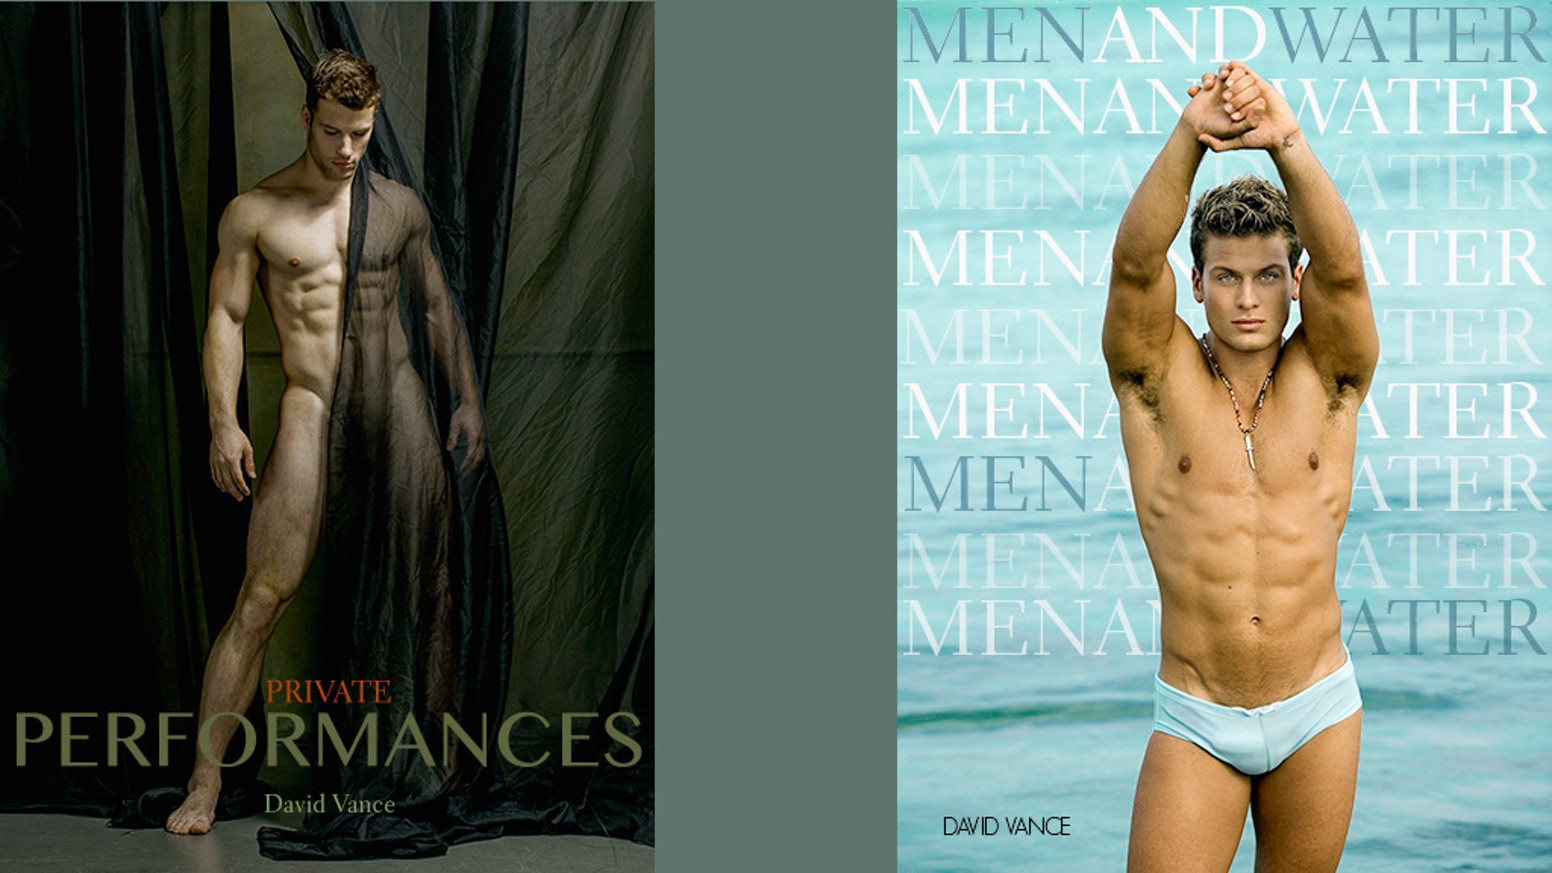 Two fine art coffee table books, one large format PRIVATE PERFORMANCES and one smaller format, MEN AND WATER.If you missed the deadline, you can still pre-order books . Follow the link below.